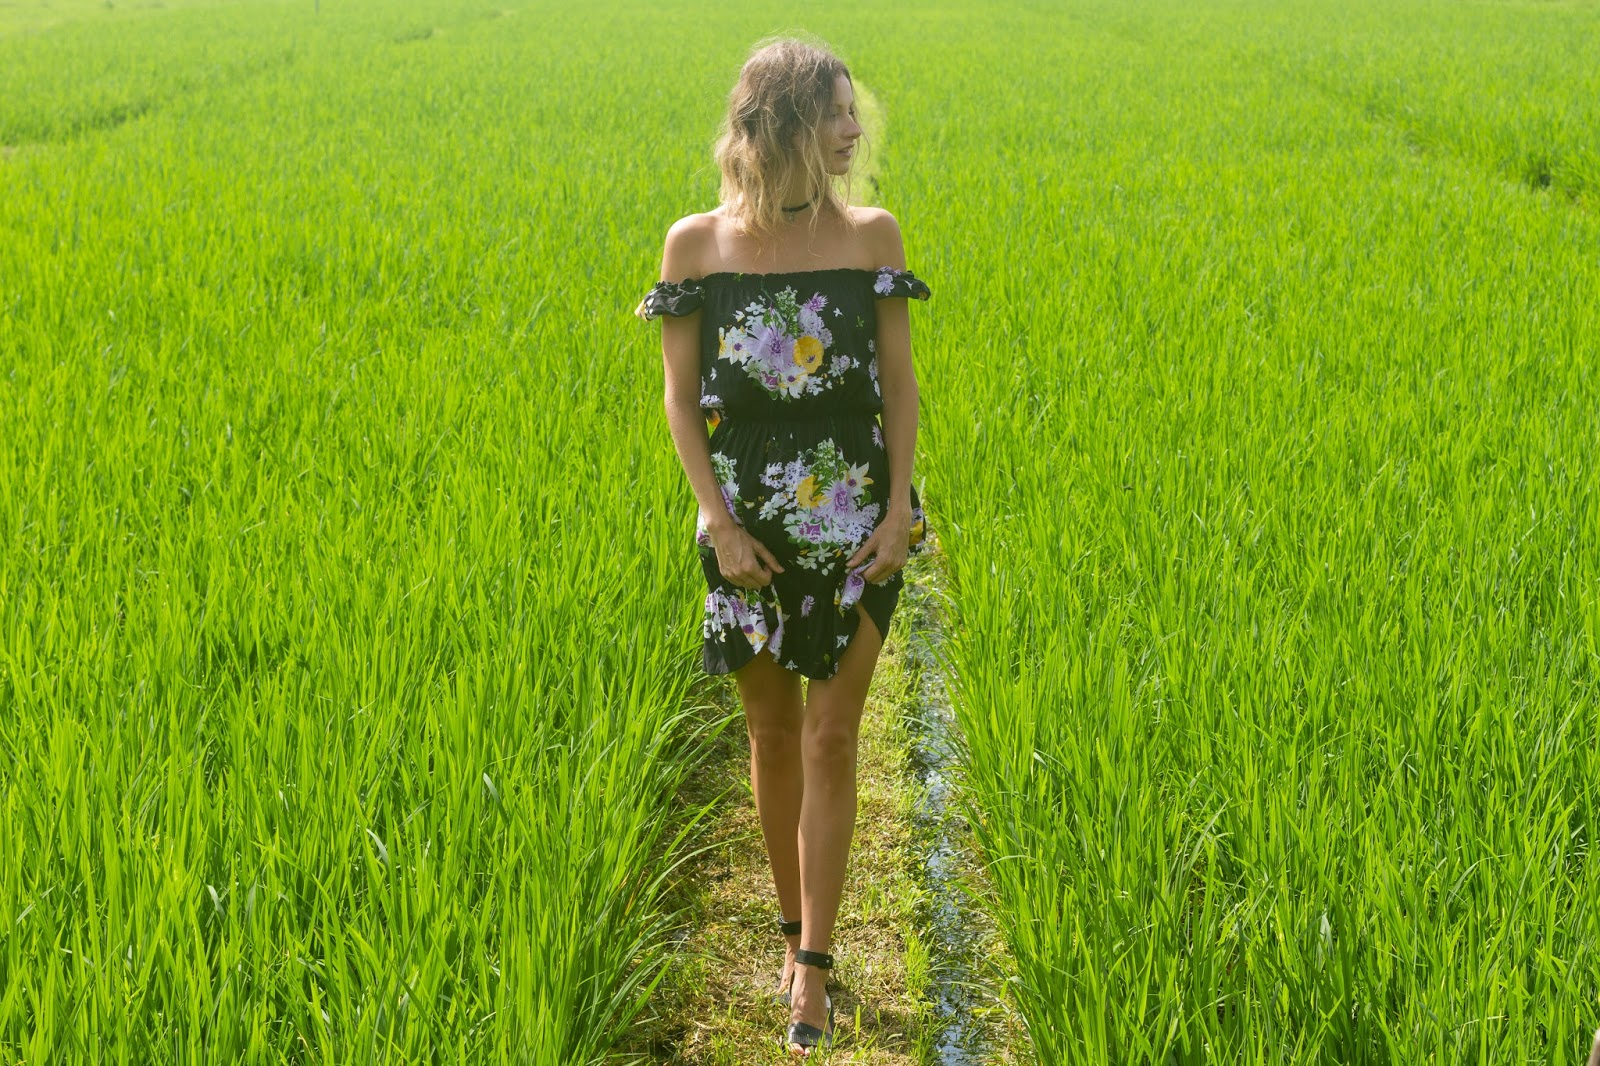 fashion and travel blogger, Alison Hutchinson, i s wearing the KAYVALYA Rosie Off The Shoulder Dress in Black Floral in a rice field in Bali